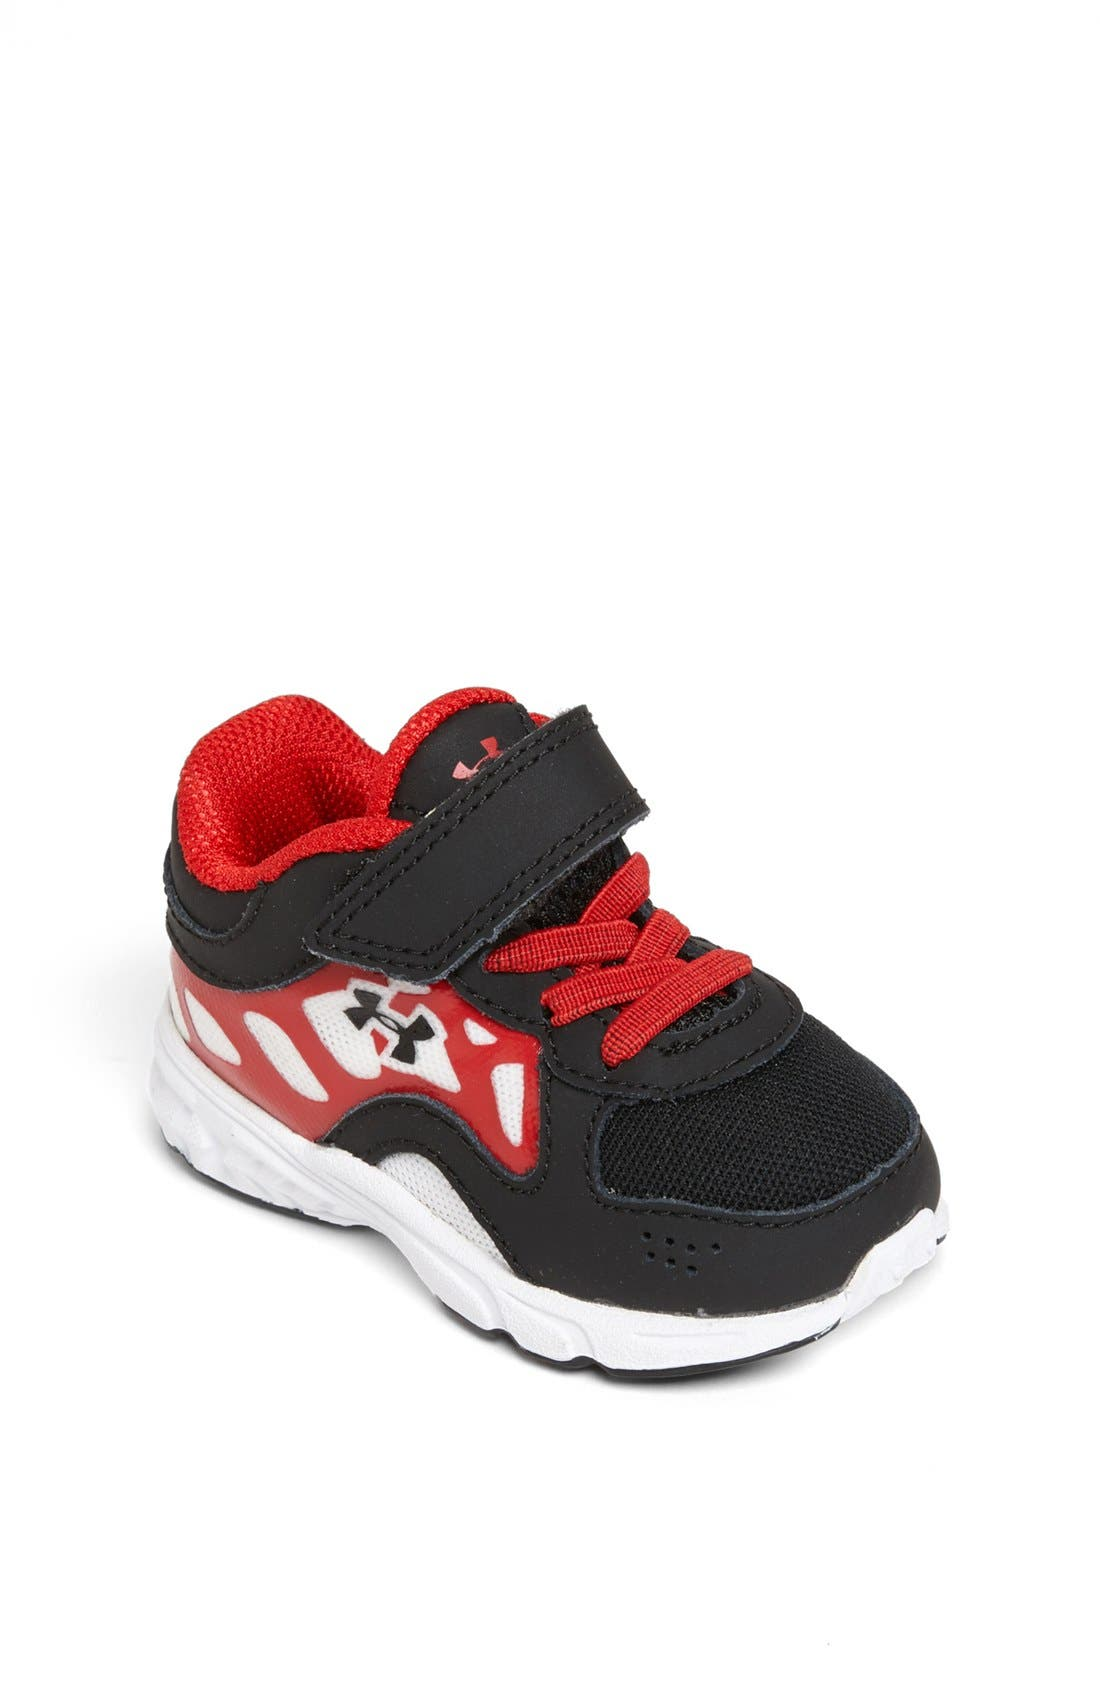 Alternate Image 1 Selected - Under Armour 'Ignite' Sneaker (Baby, Walker & Toddler)